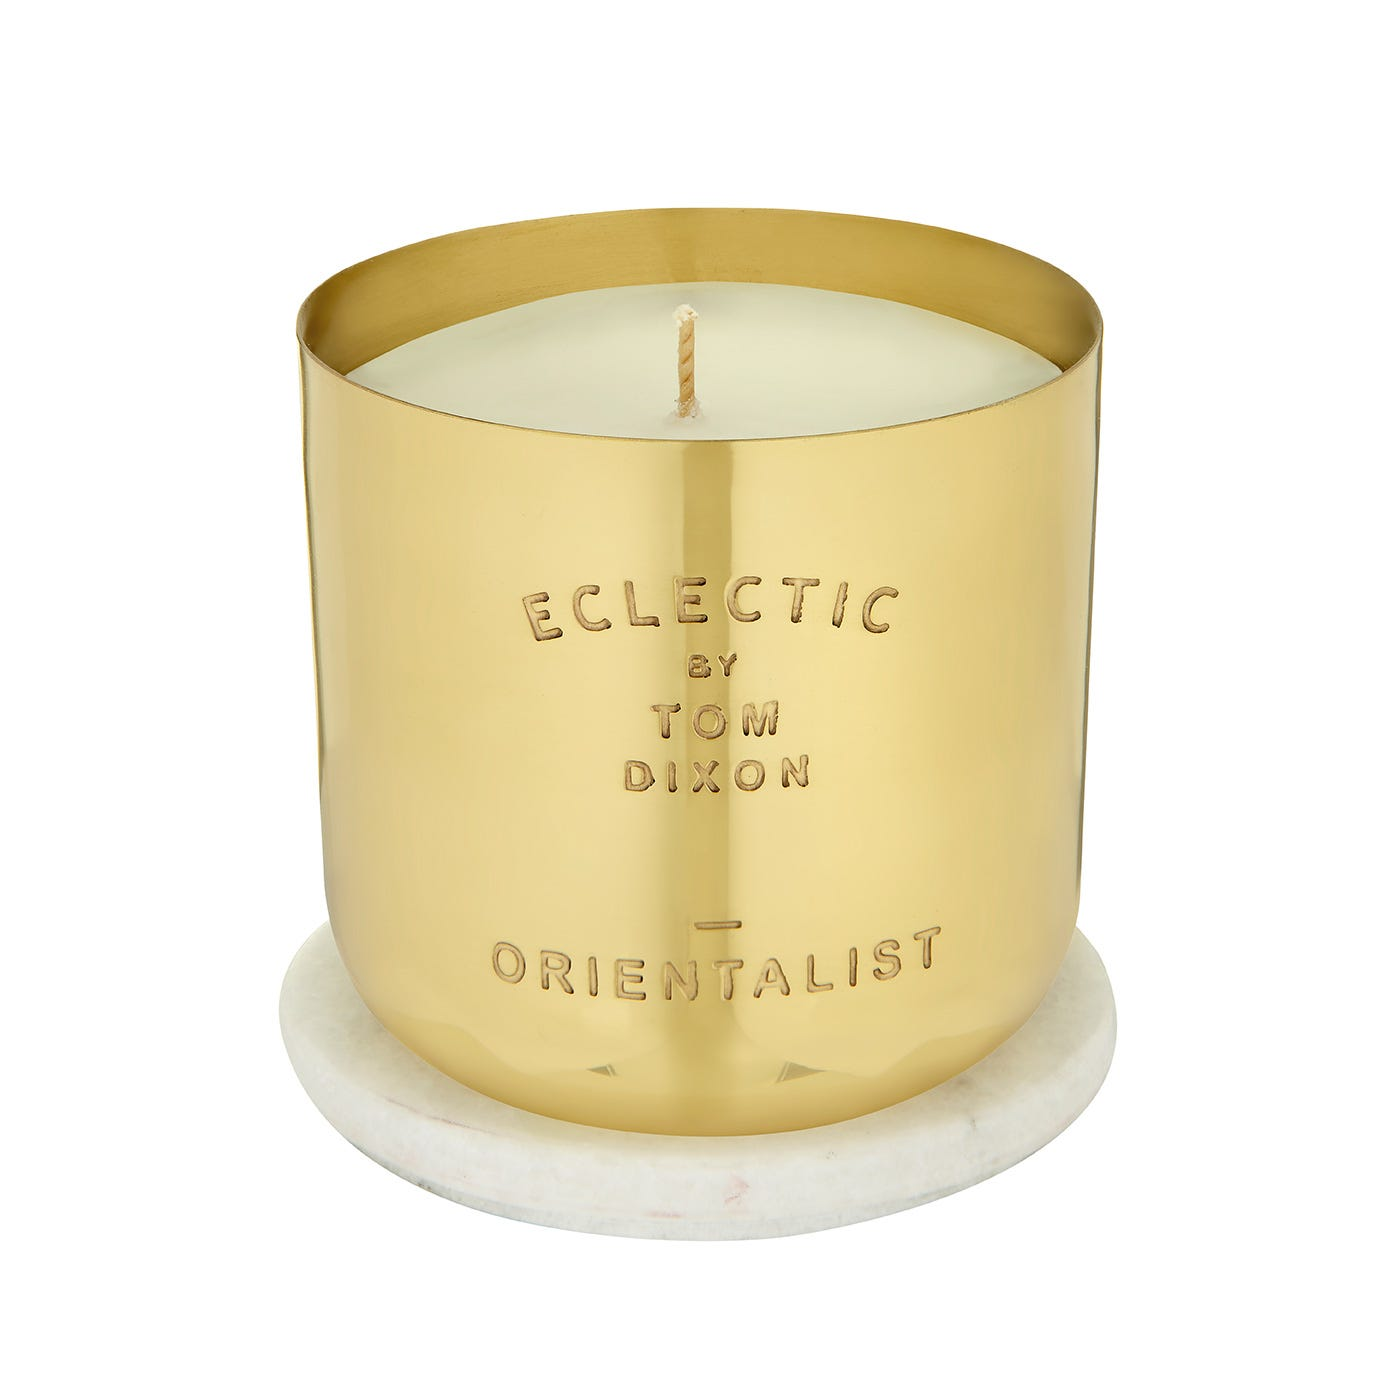 Scent Orientalist Candle